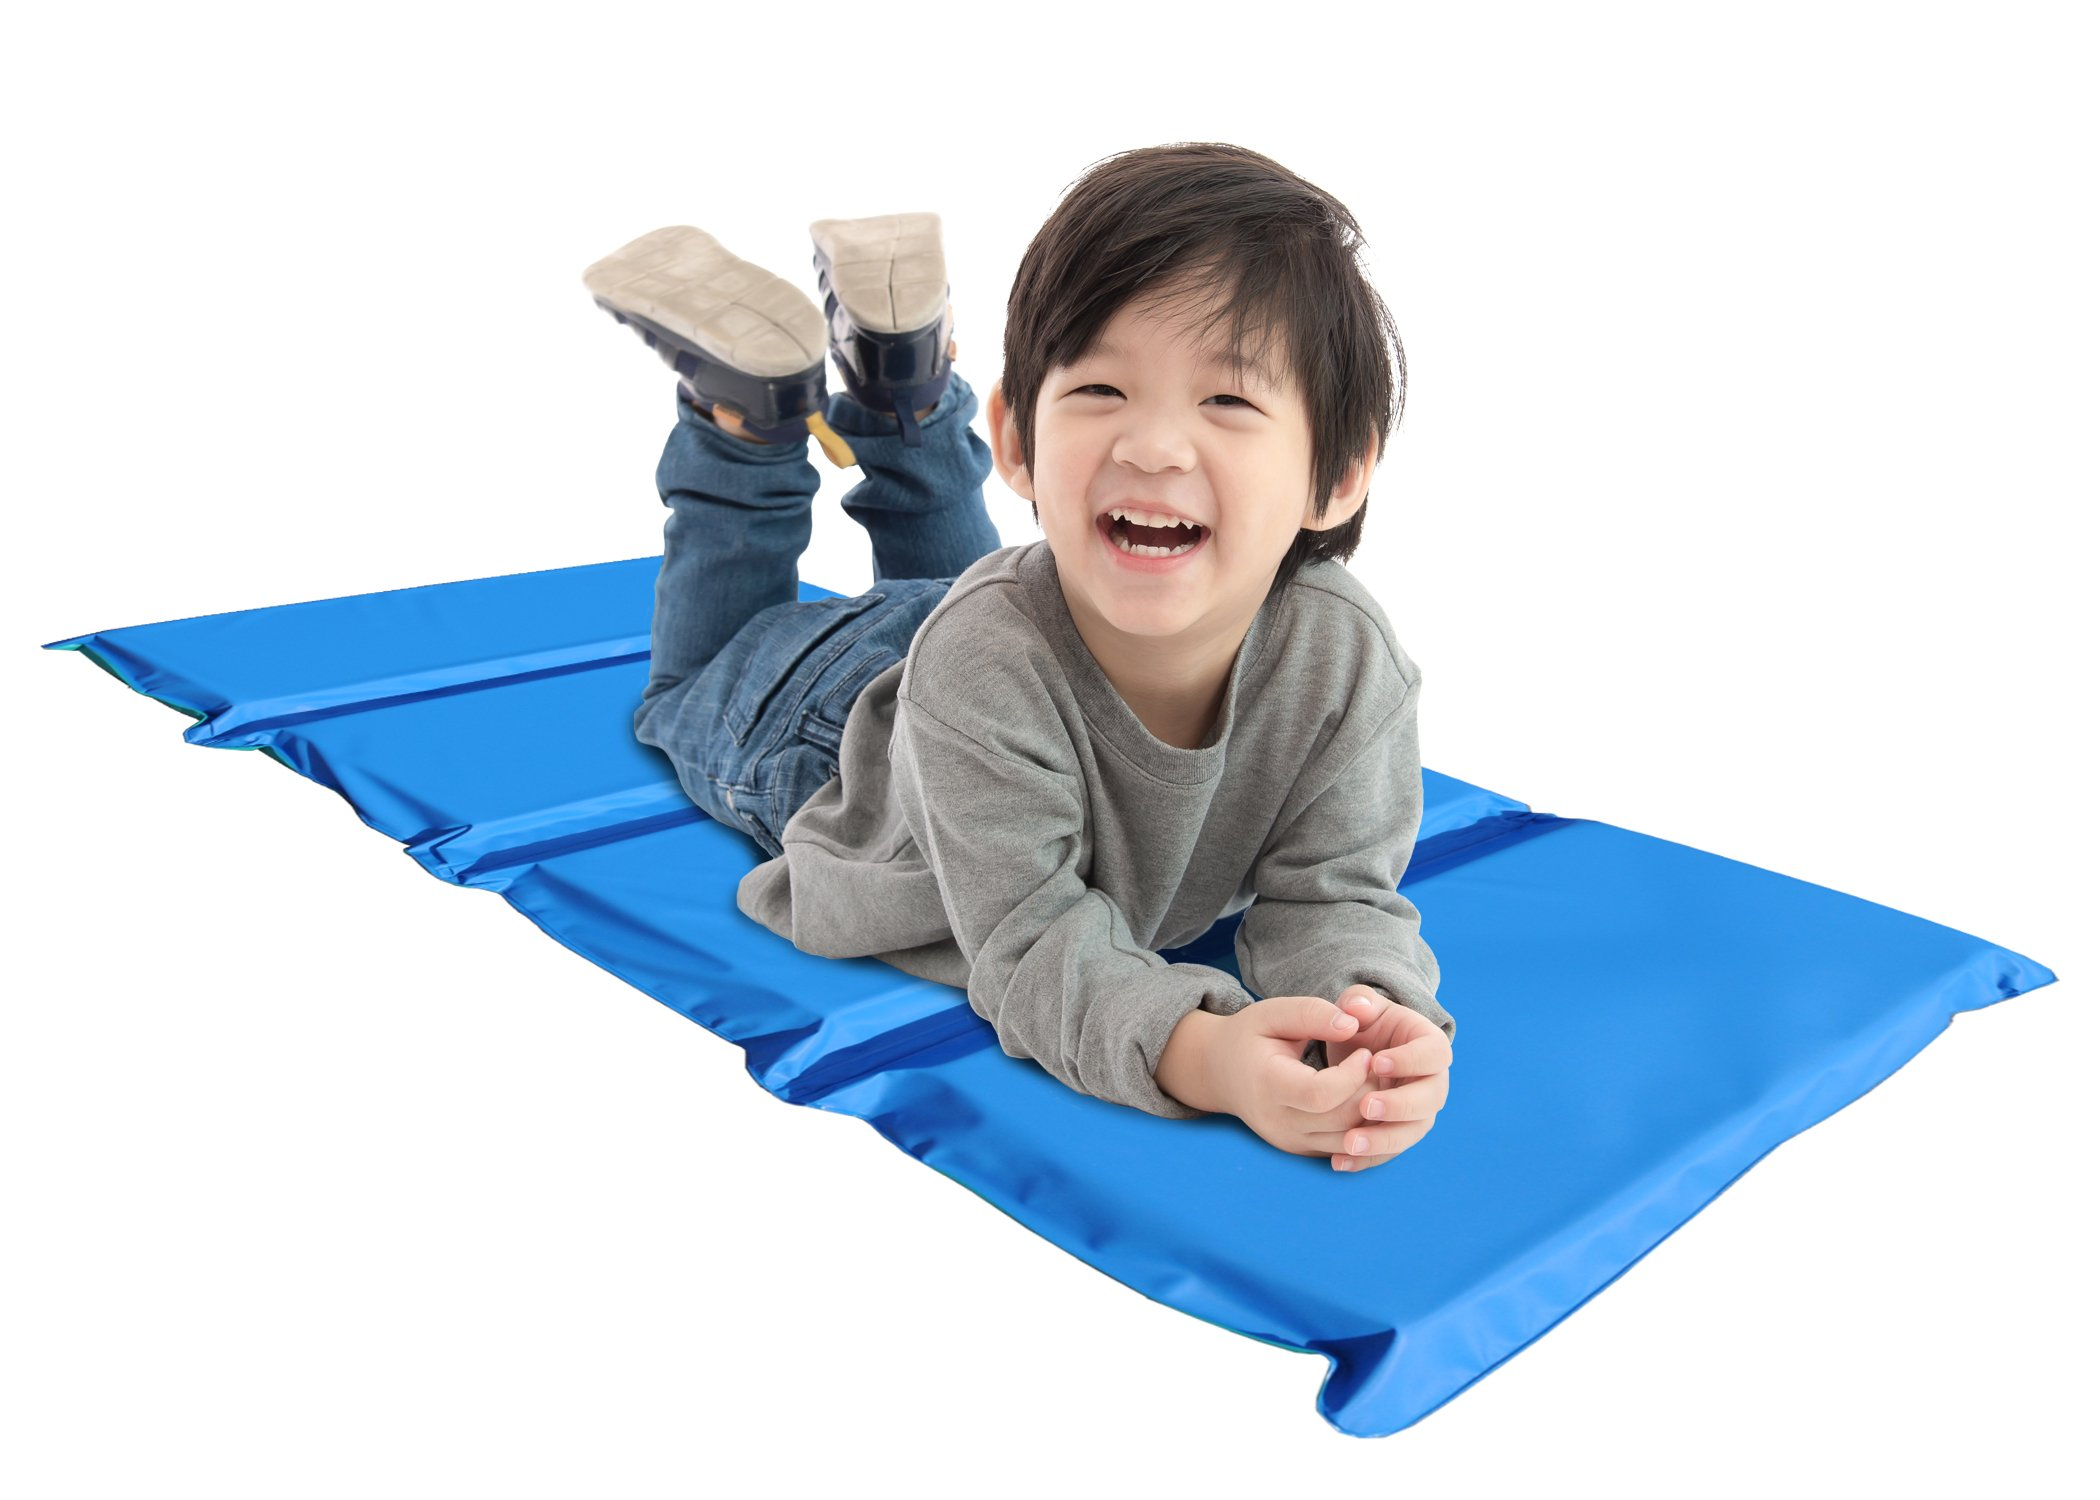 Soft Comfy Reliable And Durable Easy Clean, Disinfect And Store Peerless Plastics Blue/Teal KinderMat, 2'' x 19'' x 44'' - Perfect For School Naps